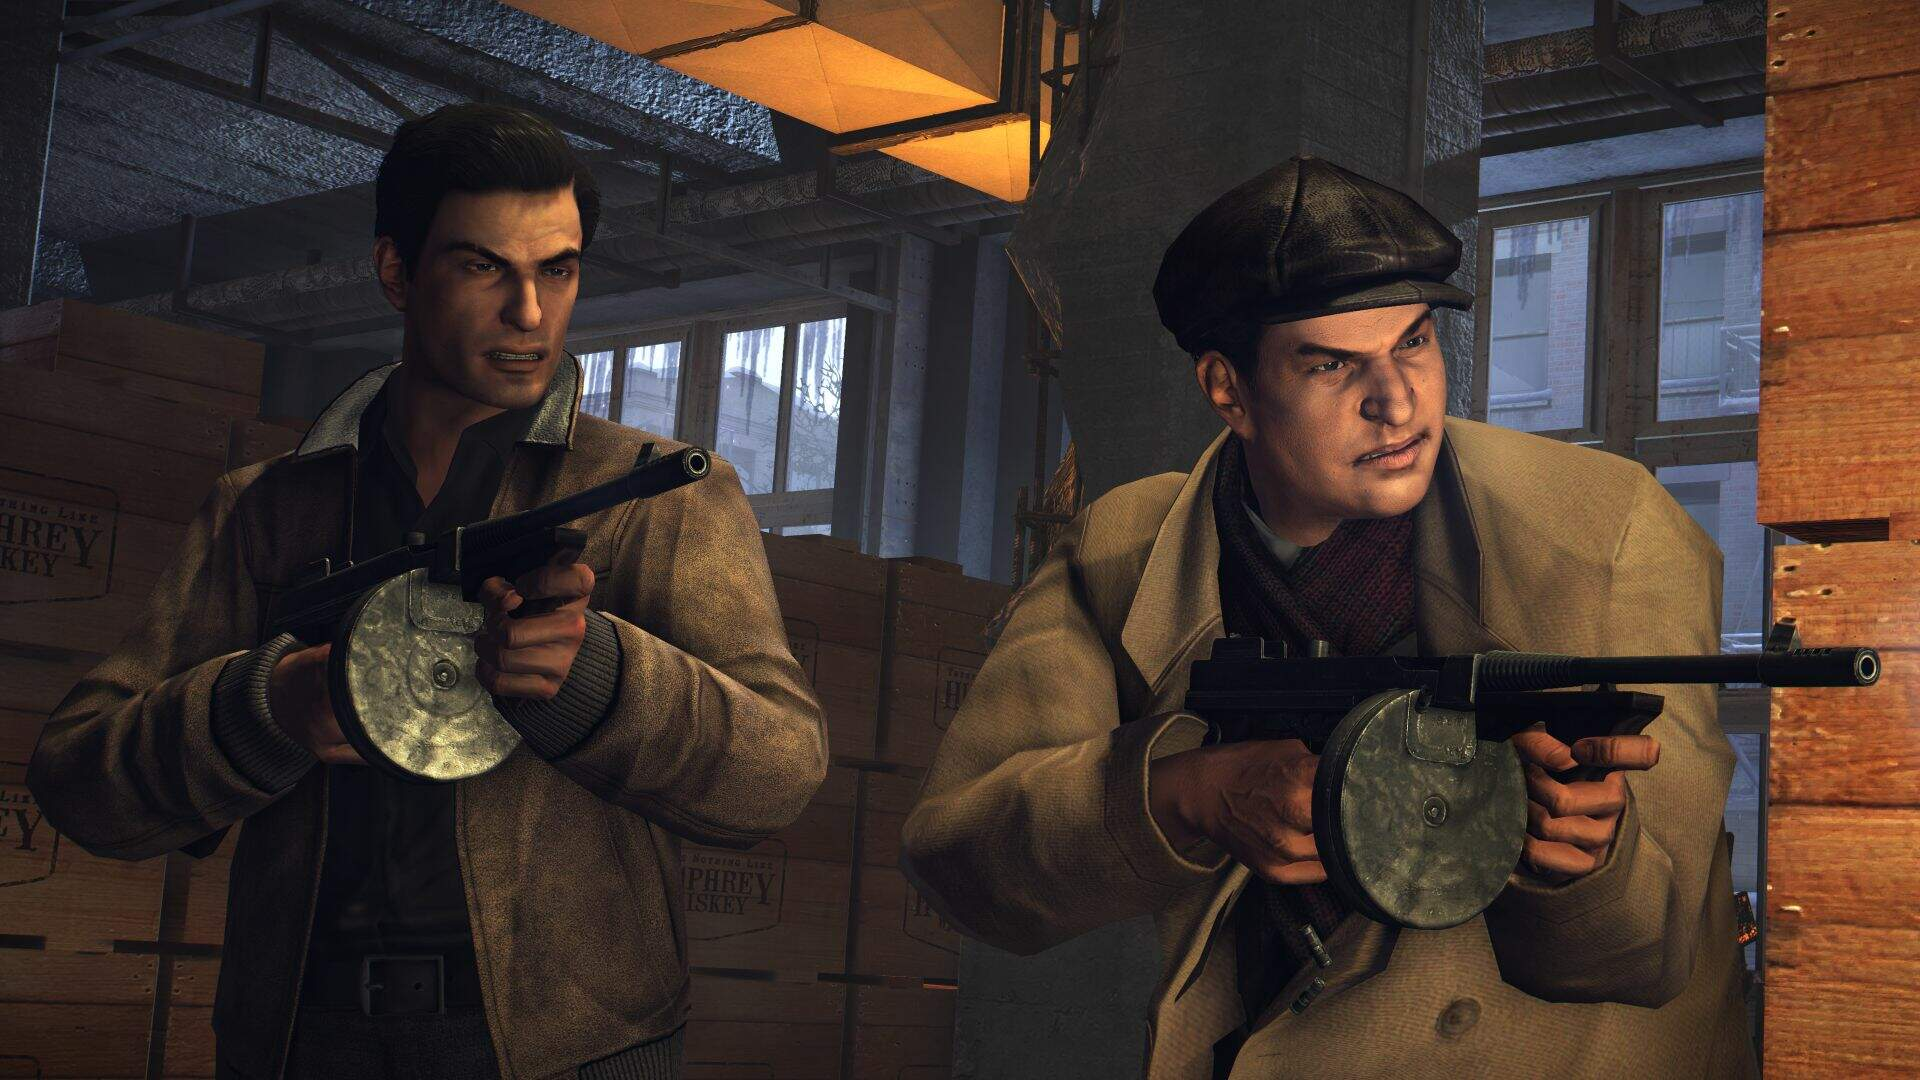 Mafia 2 Remaster Launching Today, With a Full Remake of the Original Coming in August